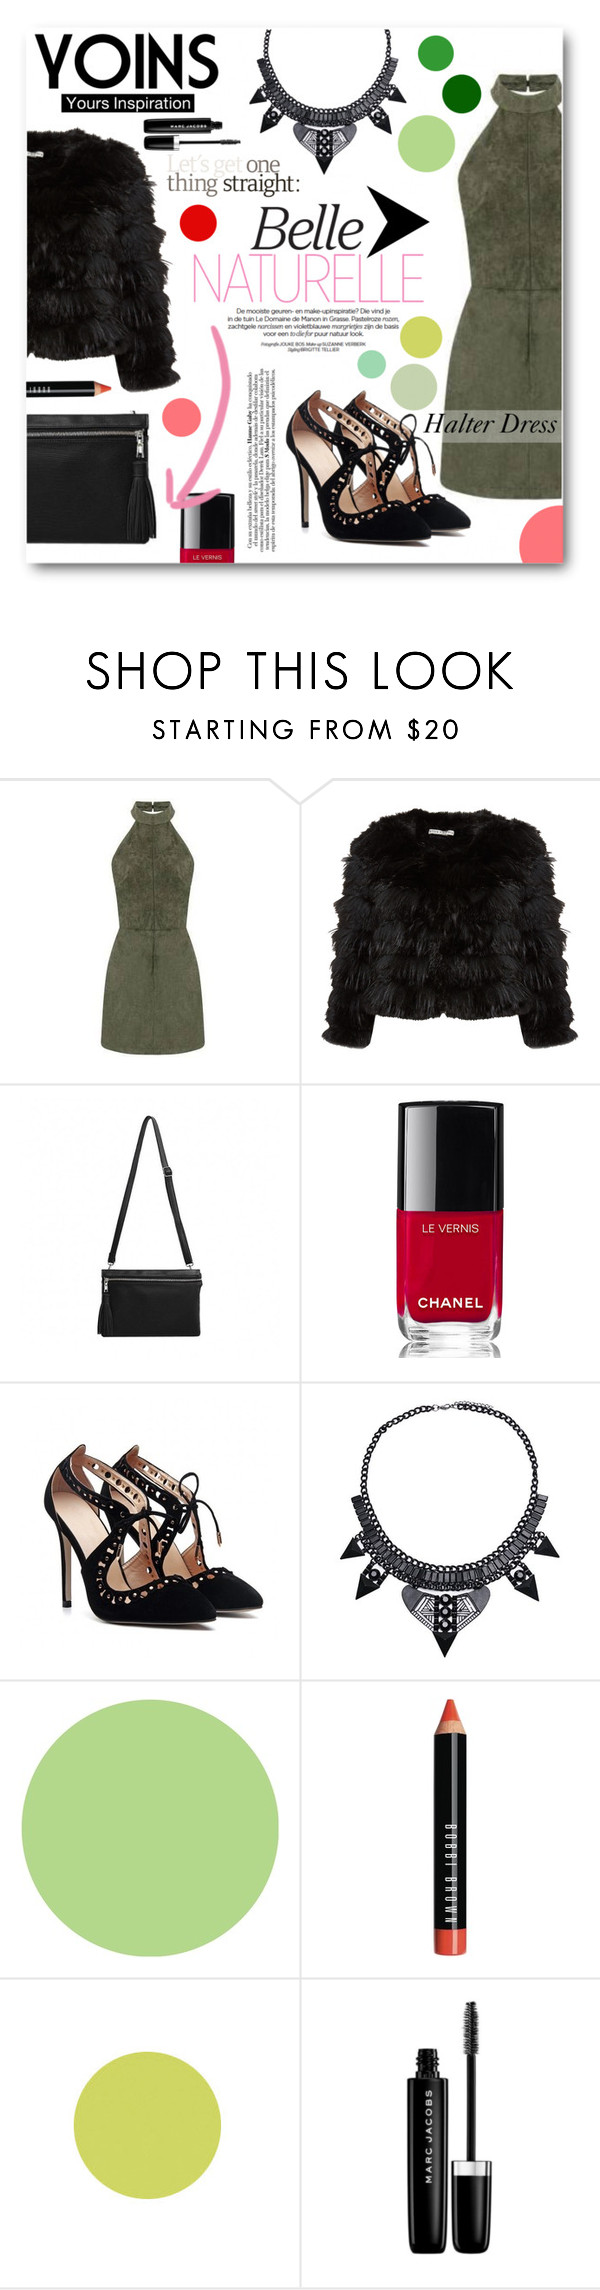 """""""Halter Dress"""" by tasnime-ben ❤ liked on Polyvore featuring Alice + Olivia, Chanel, Wall Pops!, Bobbi Brown Cosmetics, Marc Jacobs, yoins and yoinscollection"""